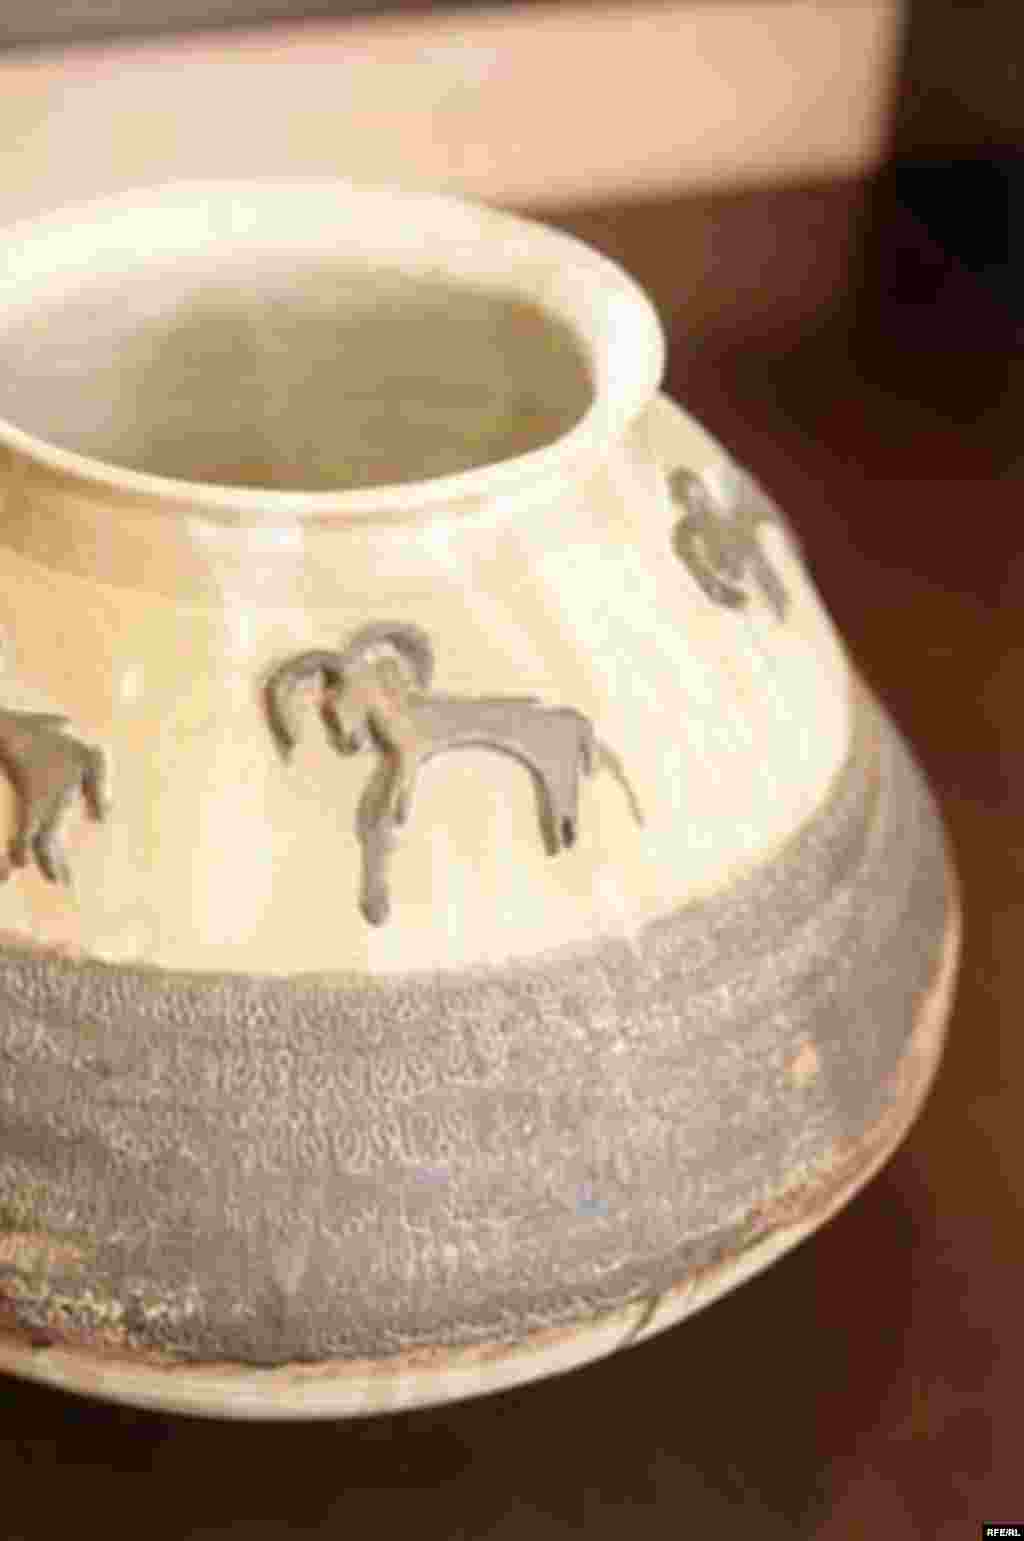 UAE, Homa Vafaee Pottery, Homa Vafaee Currently living and working in Abu Dhabi., 03/15/2007